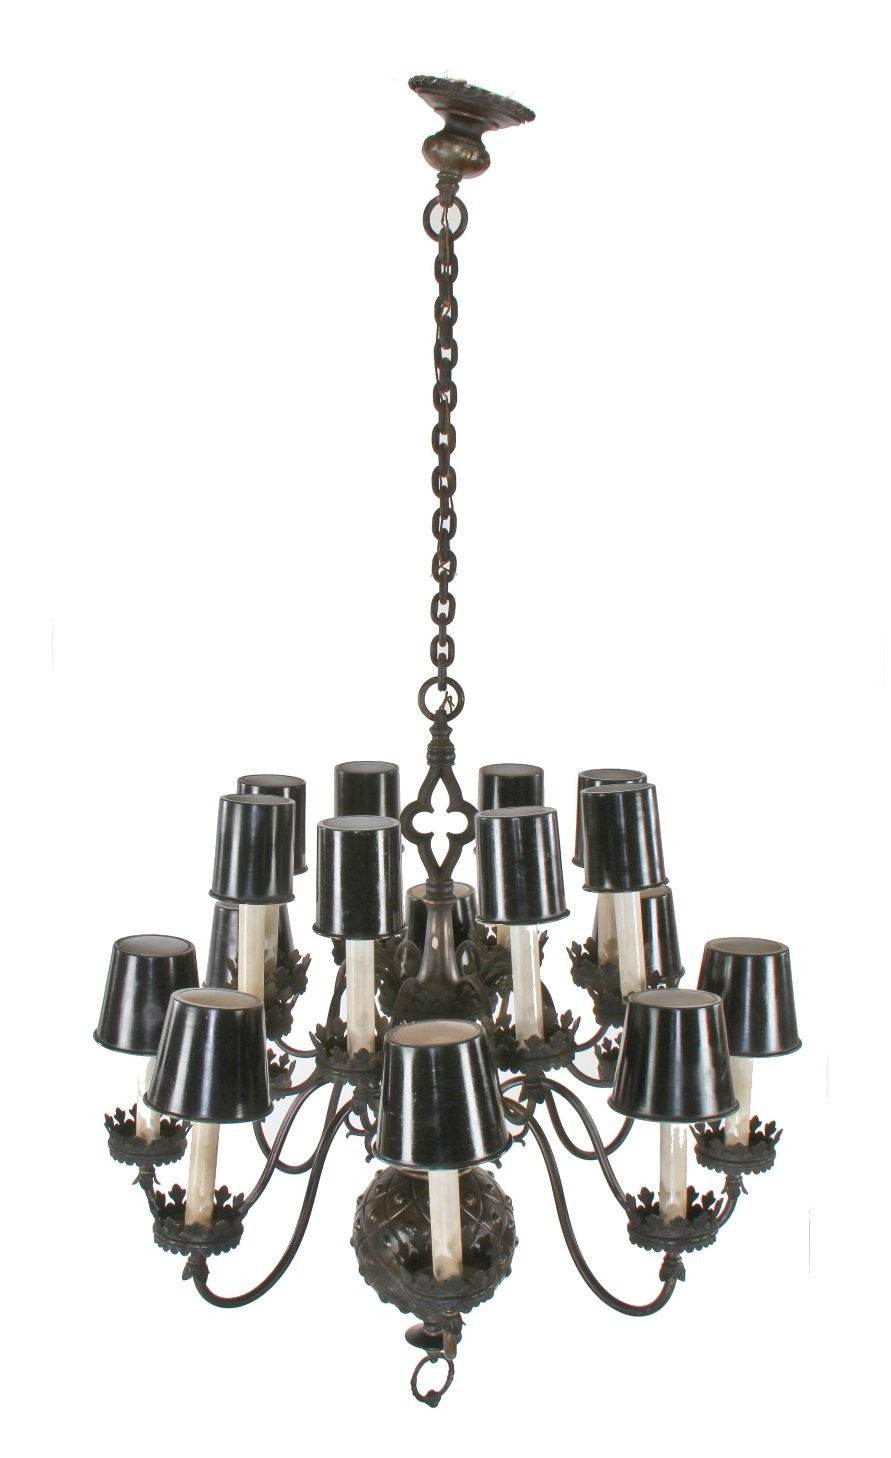 Magnificent Gothic Chandelier | Magnificent Hand Forged Iron Chandeliers